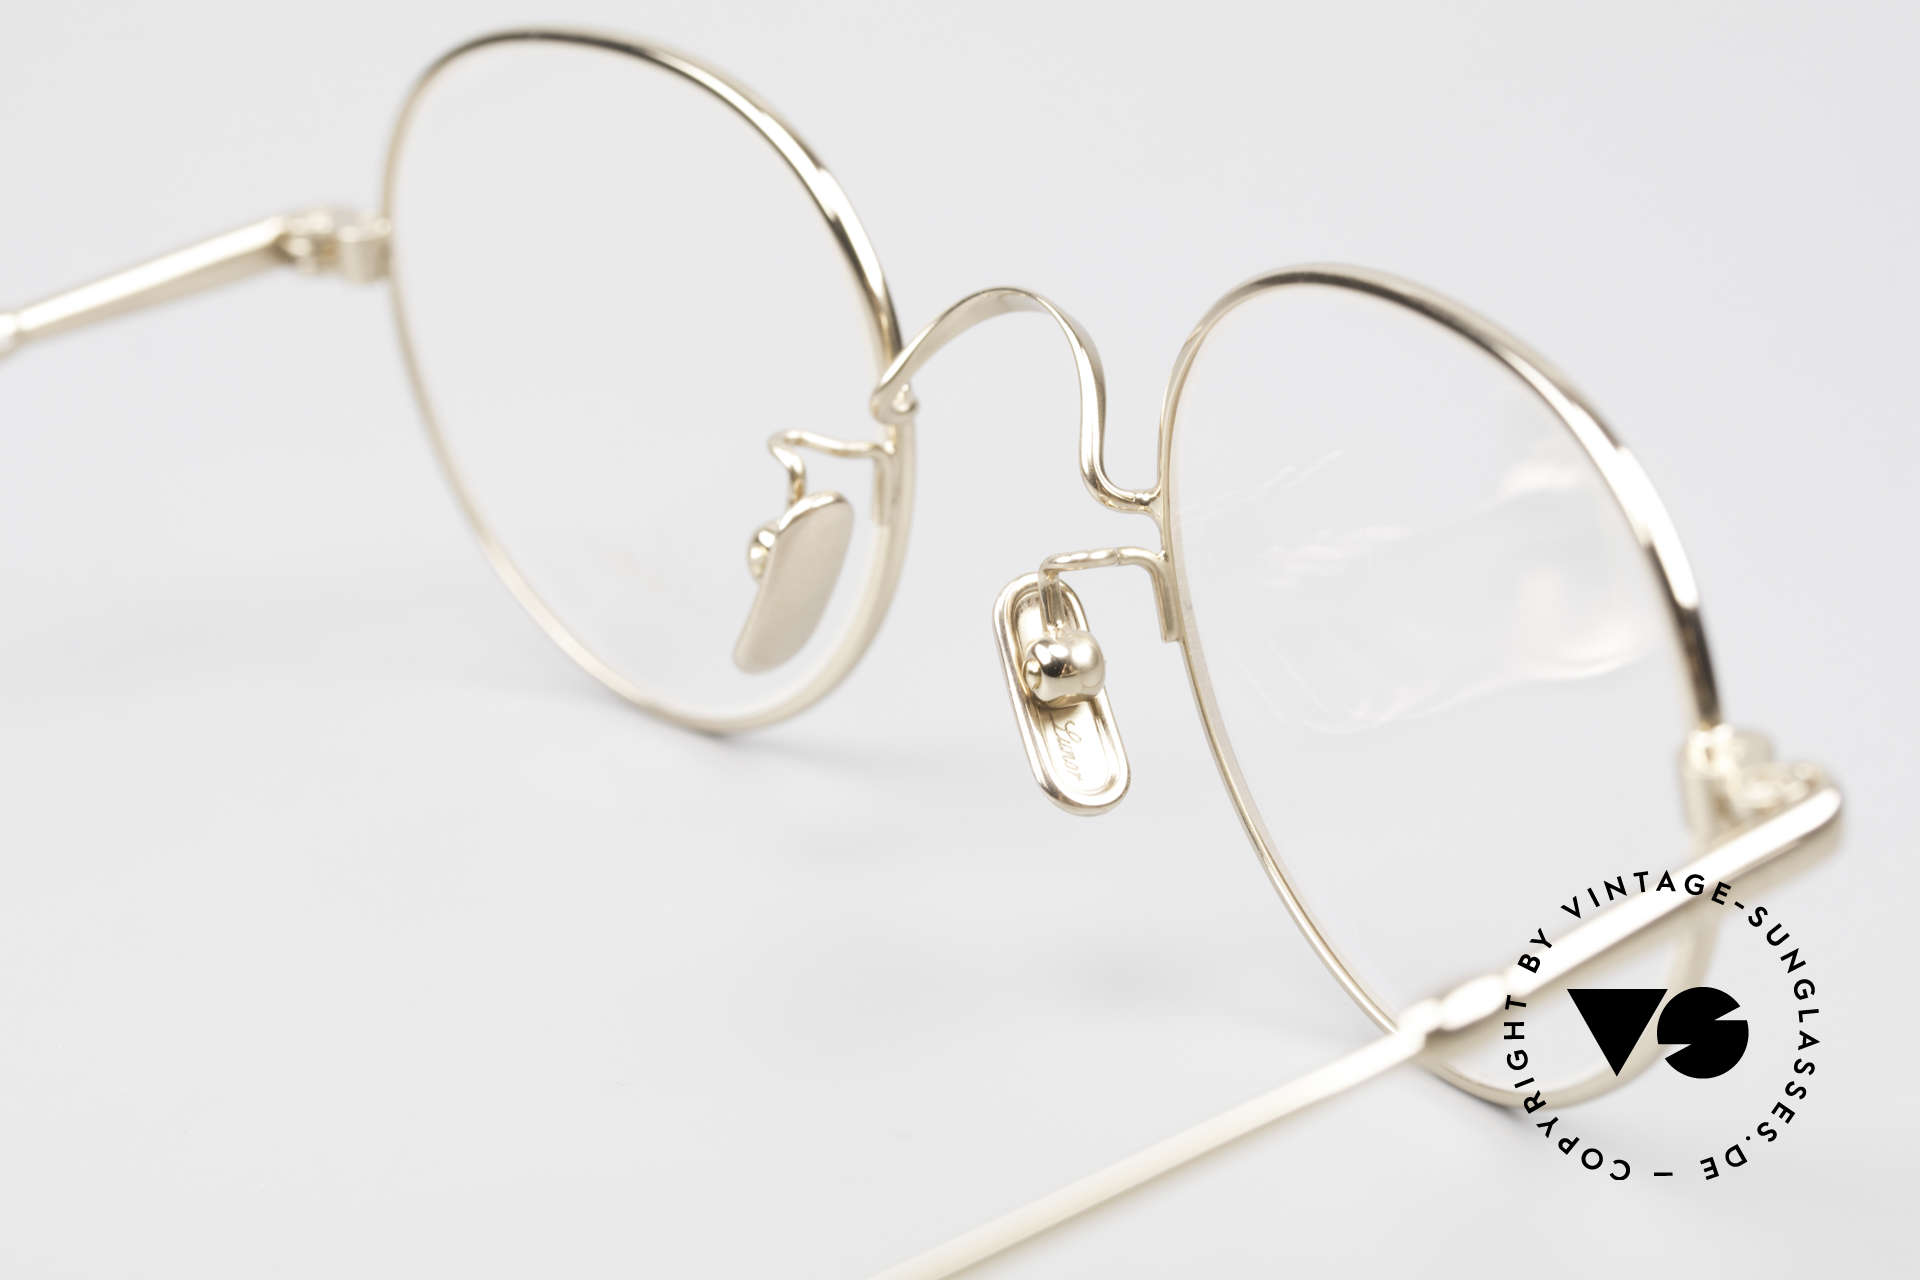 Lunor V 108 Gold Plated Glasses Titanium, the DEMO lenses should be replaced with prescriptions, Made for Men